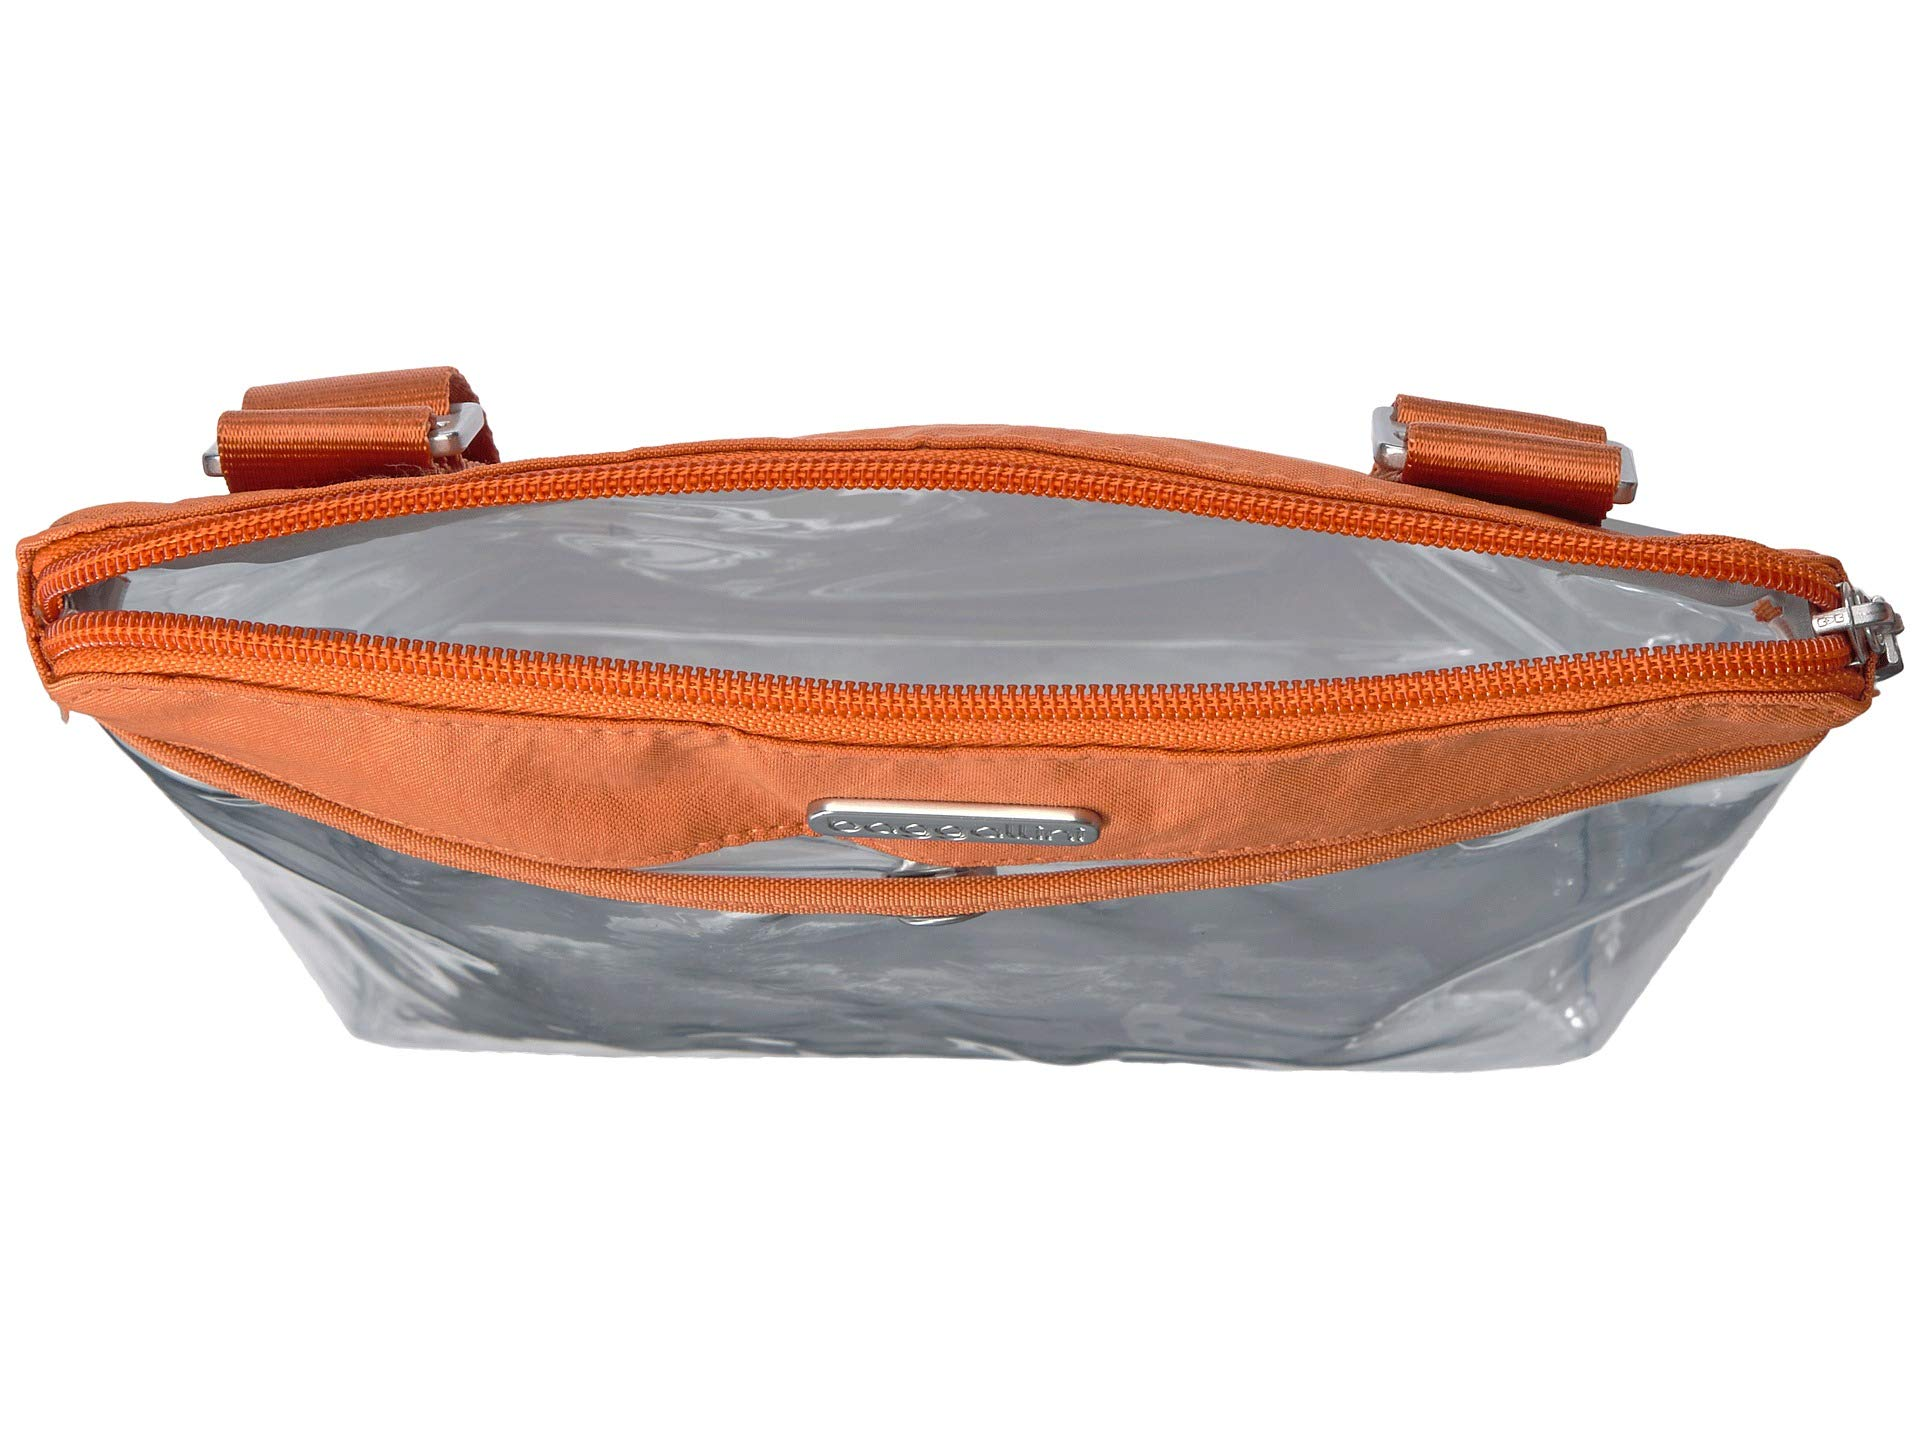 Baggallini Stadium Legacy Bags Orange Pocket Clear Crossbody wqz6Hp